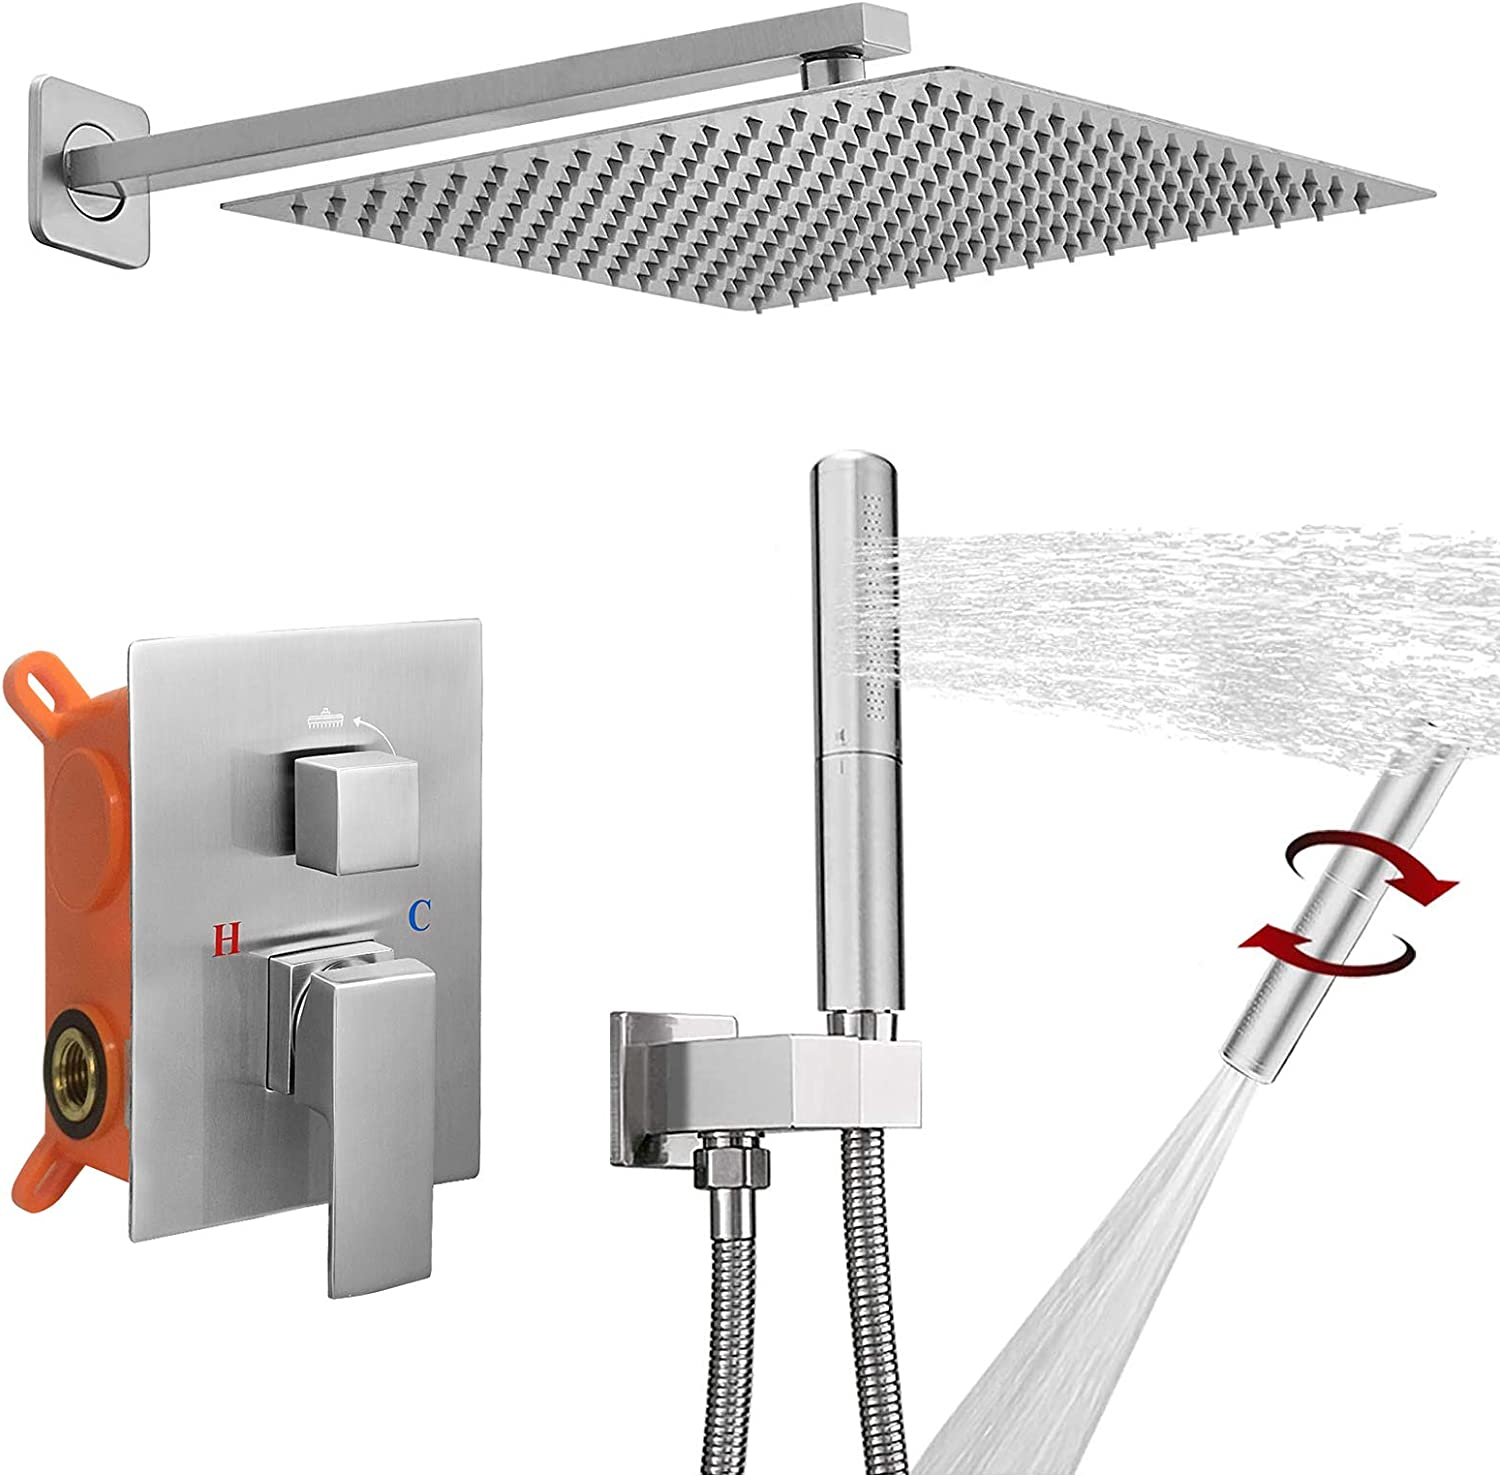 BESy Shower System with 12 Inch Rain Shower Head and Handheld Wall Mounted, High Pressure Rainfall Shower Faucet Fixture Combo Set with 2 in 1 Handheld Showerhead for Bathroom, Brushed Nickel